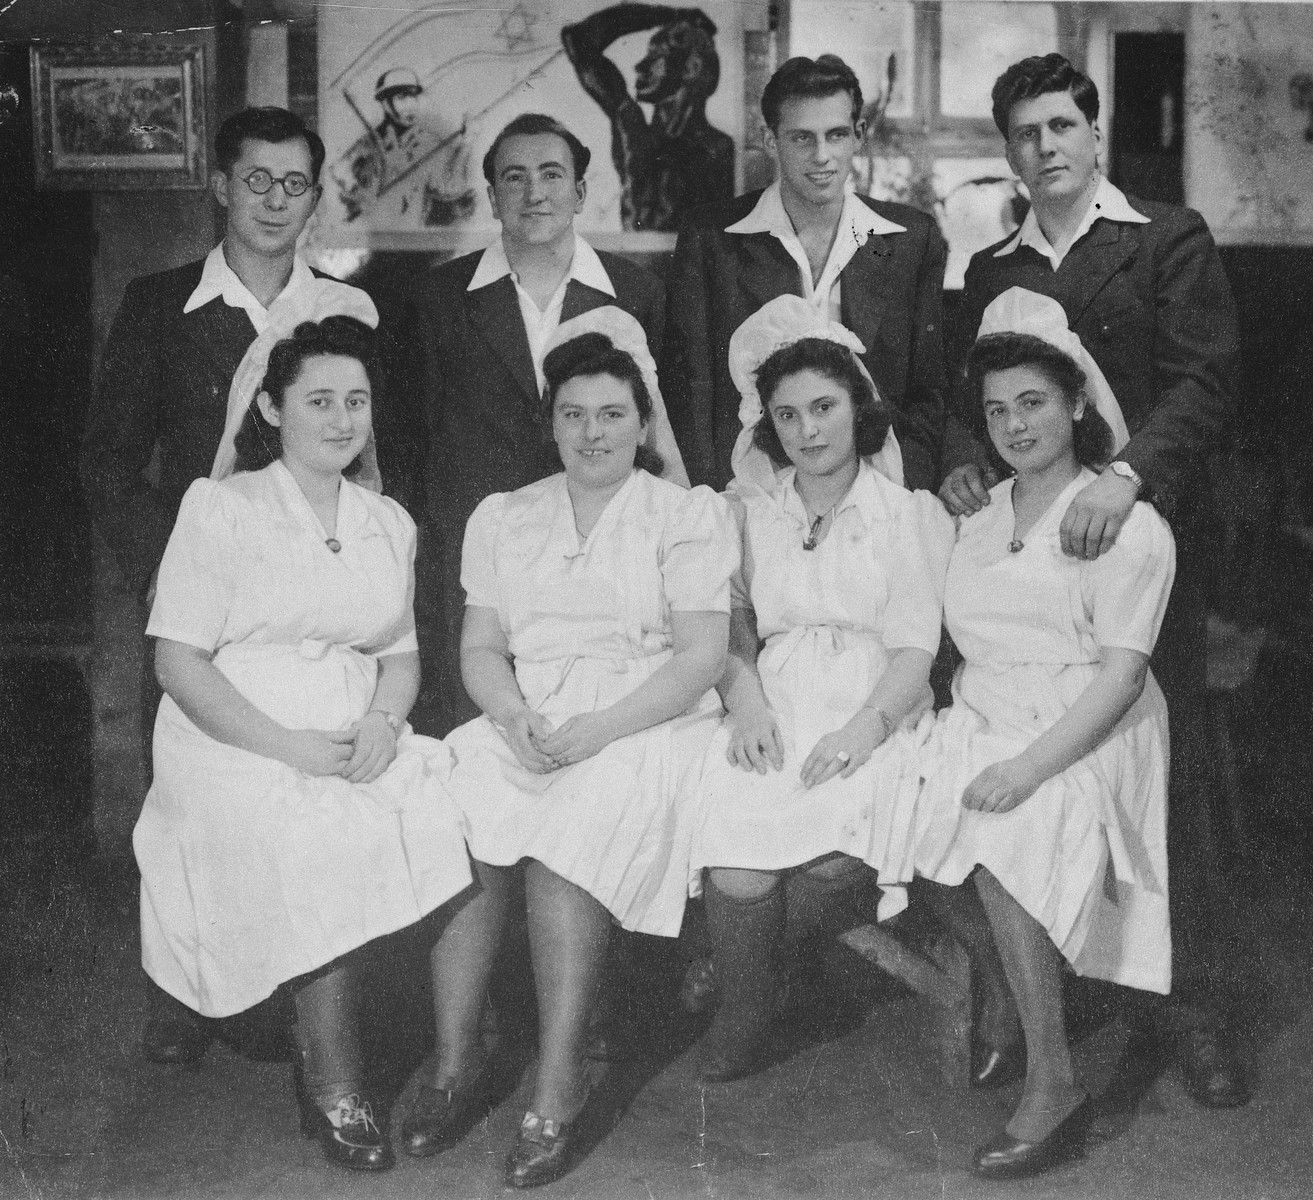 Group portrait of four couples at the Kibbutz Buchenwald hachshara (Zionist collective) in Geringshof, Germany, who are about to be married.  Pictured from left to right are Szymon and Hana Szmulewicz; Wajsman and his bride Rozka; Moniek and his bride Dora; and Gershon and Malka Belkowski.